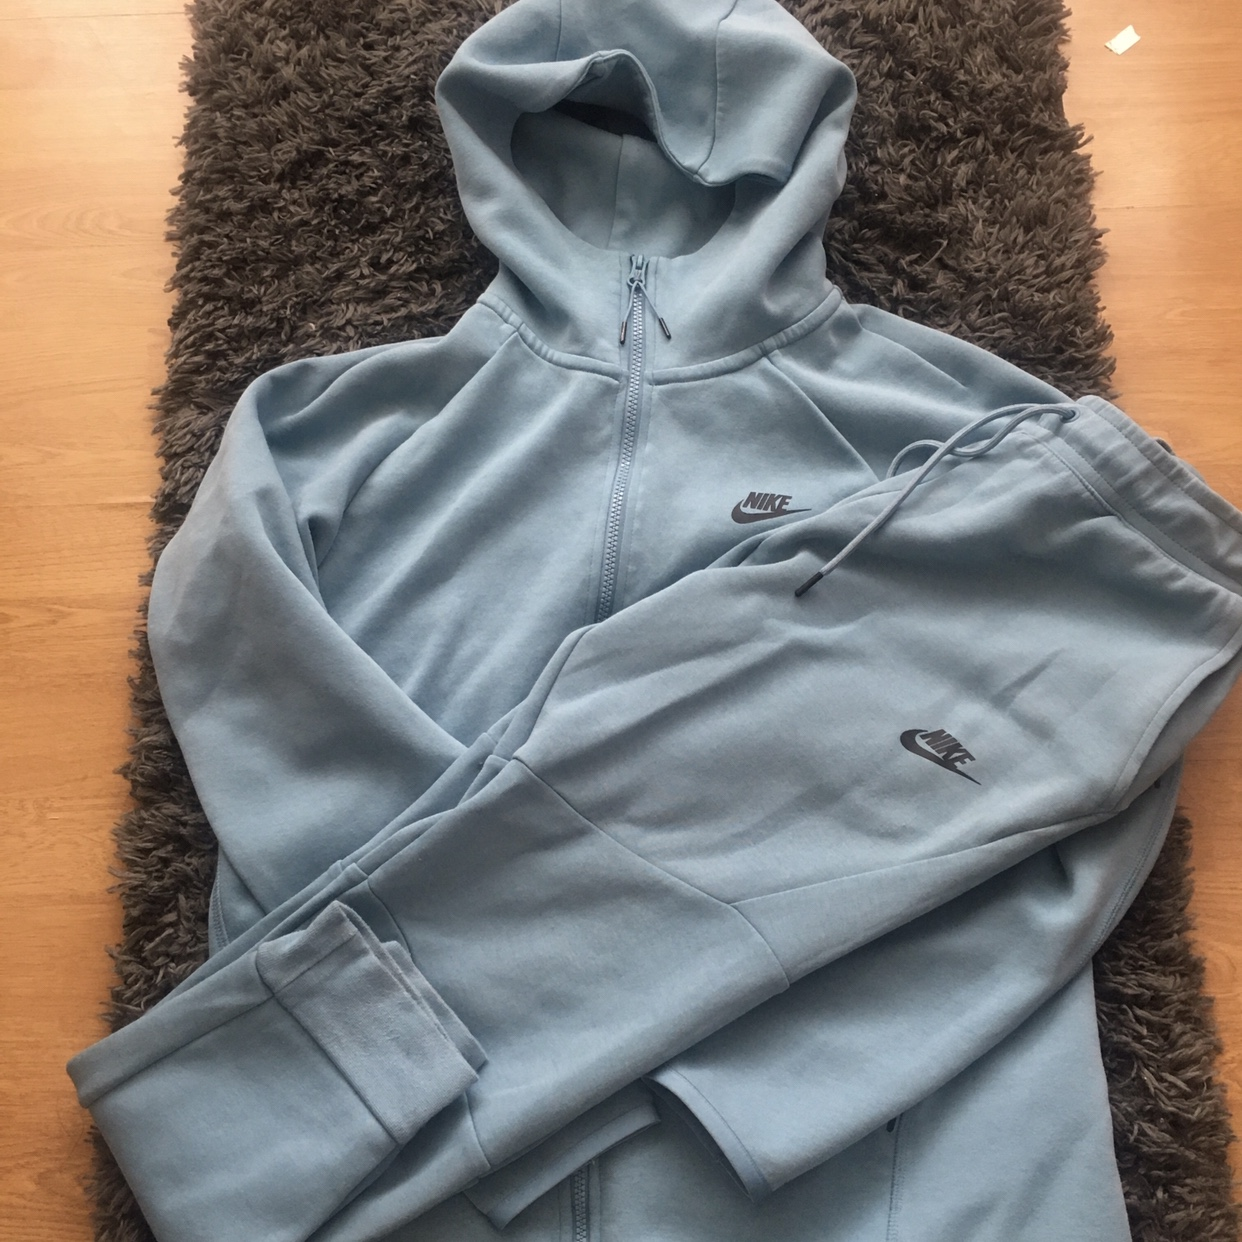 Fresh Baby Blue Nike Tech Tracksuit For Sale In A Depop